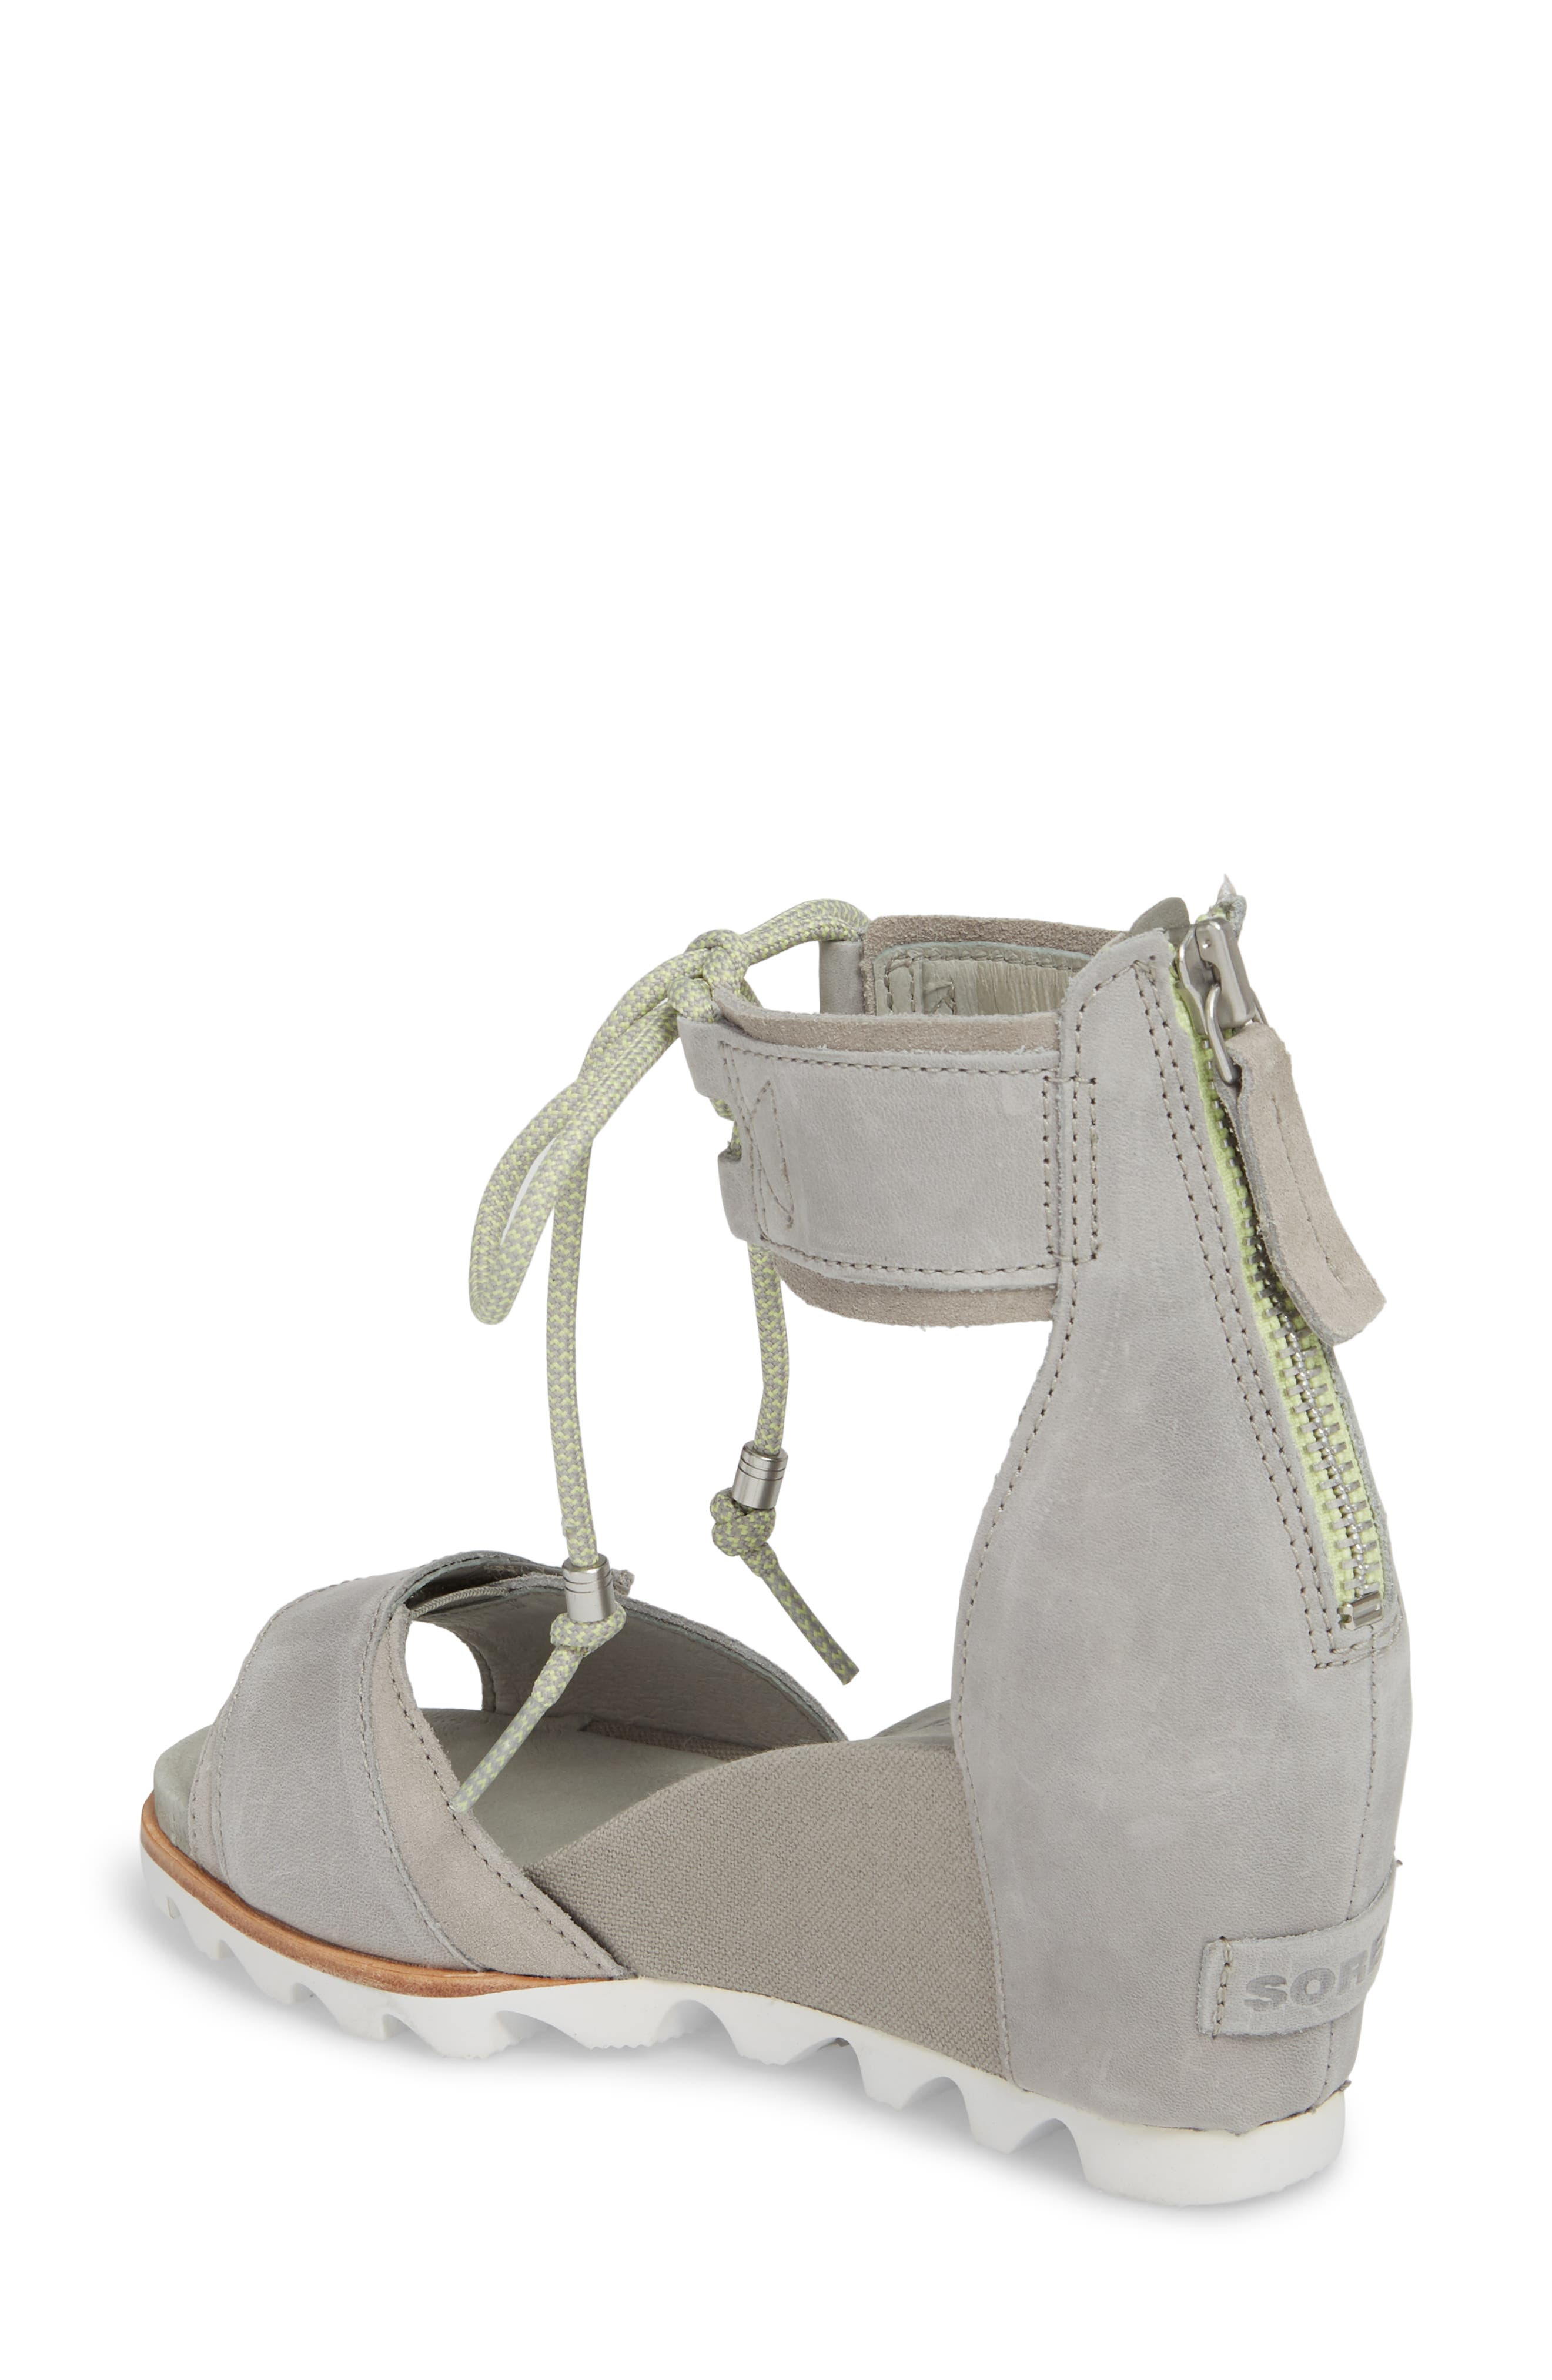 Joanie Cuff Wedge Sandal,                             Alternate thumbnail 2, color,                             Dove